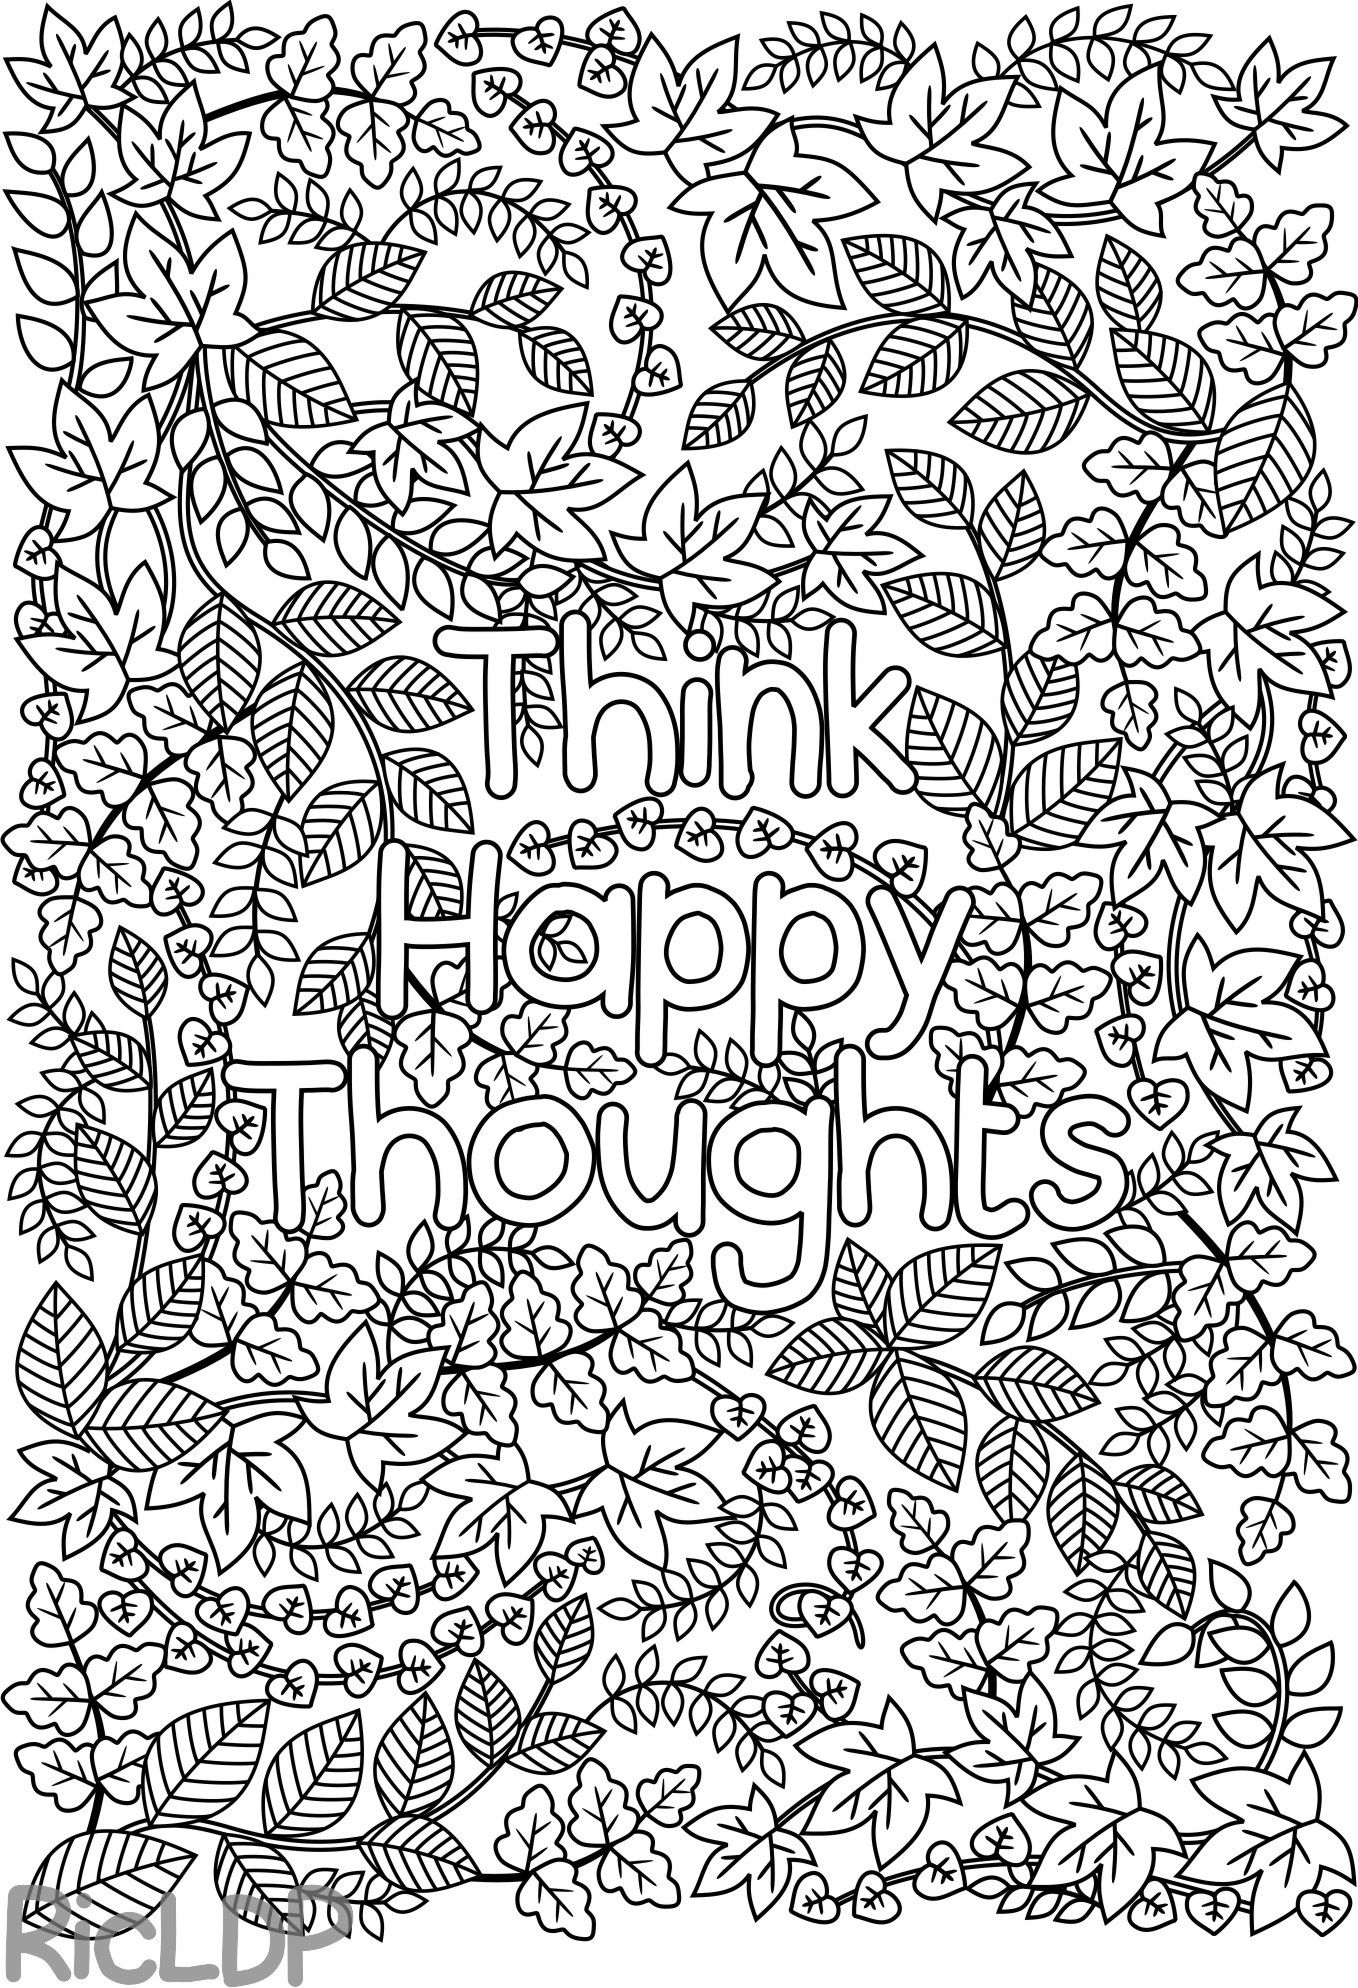 Free 8 5 X 11 Coloring Pages Concept